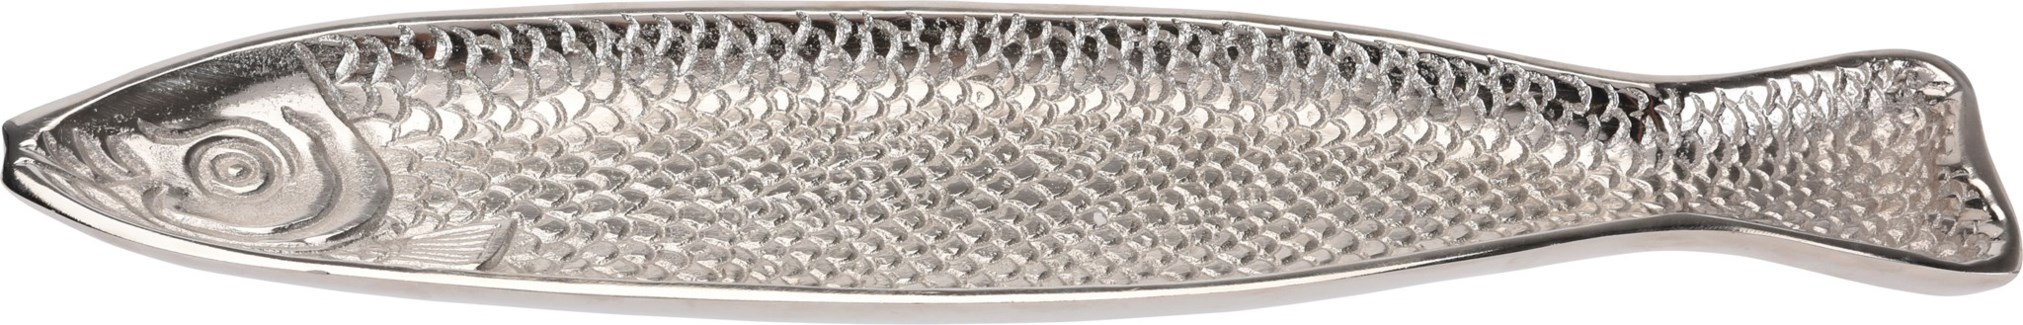 A44321200-Decorative Fish Long Plate, M, Aluminum, 17.3x4x.6 in *Not Suitable For Direct Food Conta